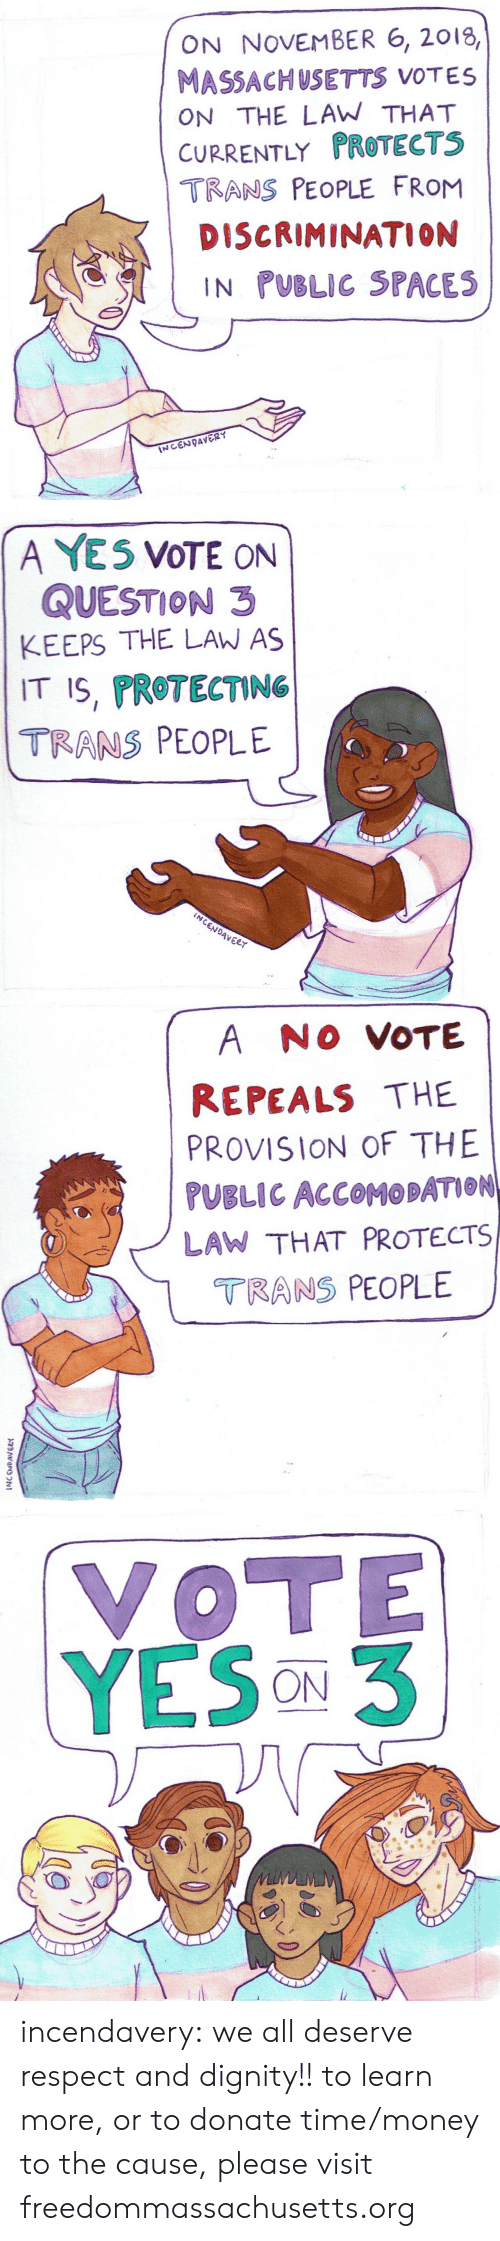 Money, Respect, and Tumblr: ON NOVEMBER 6, 2018,  MASSACHUSETTS VOTES  ON THE LAW THAT  CURRENTLY PROTECTS  TRANS PEOPLE FRoM  DISCRIMINATION  IN PUBLIC SPACES   A YE5 VOTE ON  QUESTION 3  KEEPS THE LAW AS  IT S, PROTECTING  TRANS PEOPLE  Vo  4VER   A NO VOTE  REPEALS THE  PROVISION OF THE  PUBLIC ACCOMOBATION  LAW THAT PROTECTS  TRANS PEOPLE  2   VOTE  YESON3 incendavery: we all deserve respect and dignity!!  to learn more, or to donate time/money to the cause, please visit freedommassachusetts.org